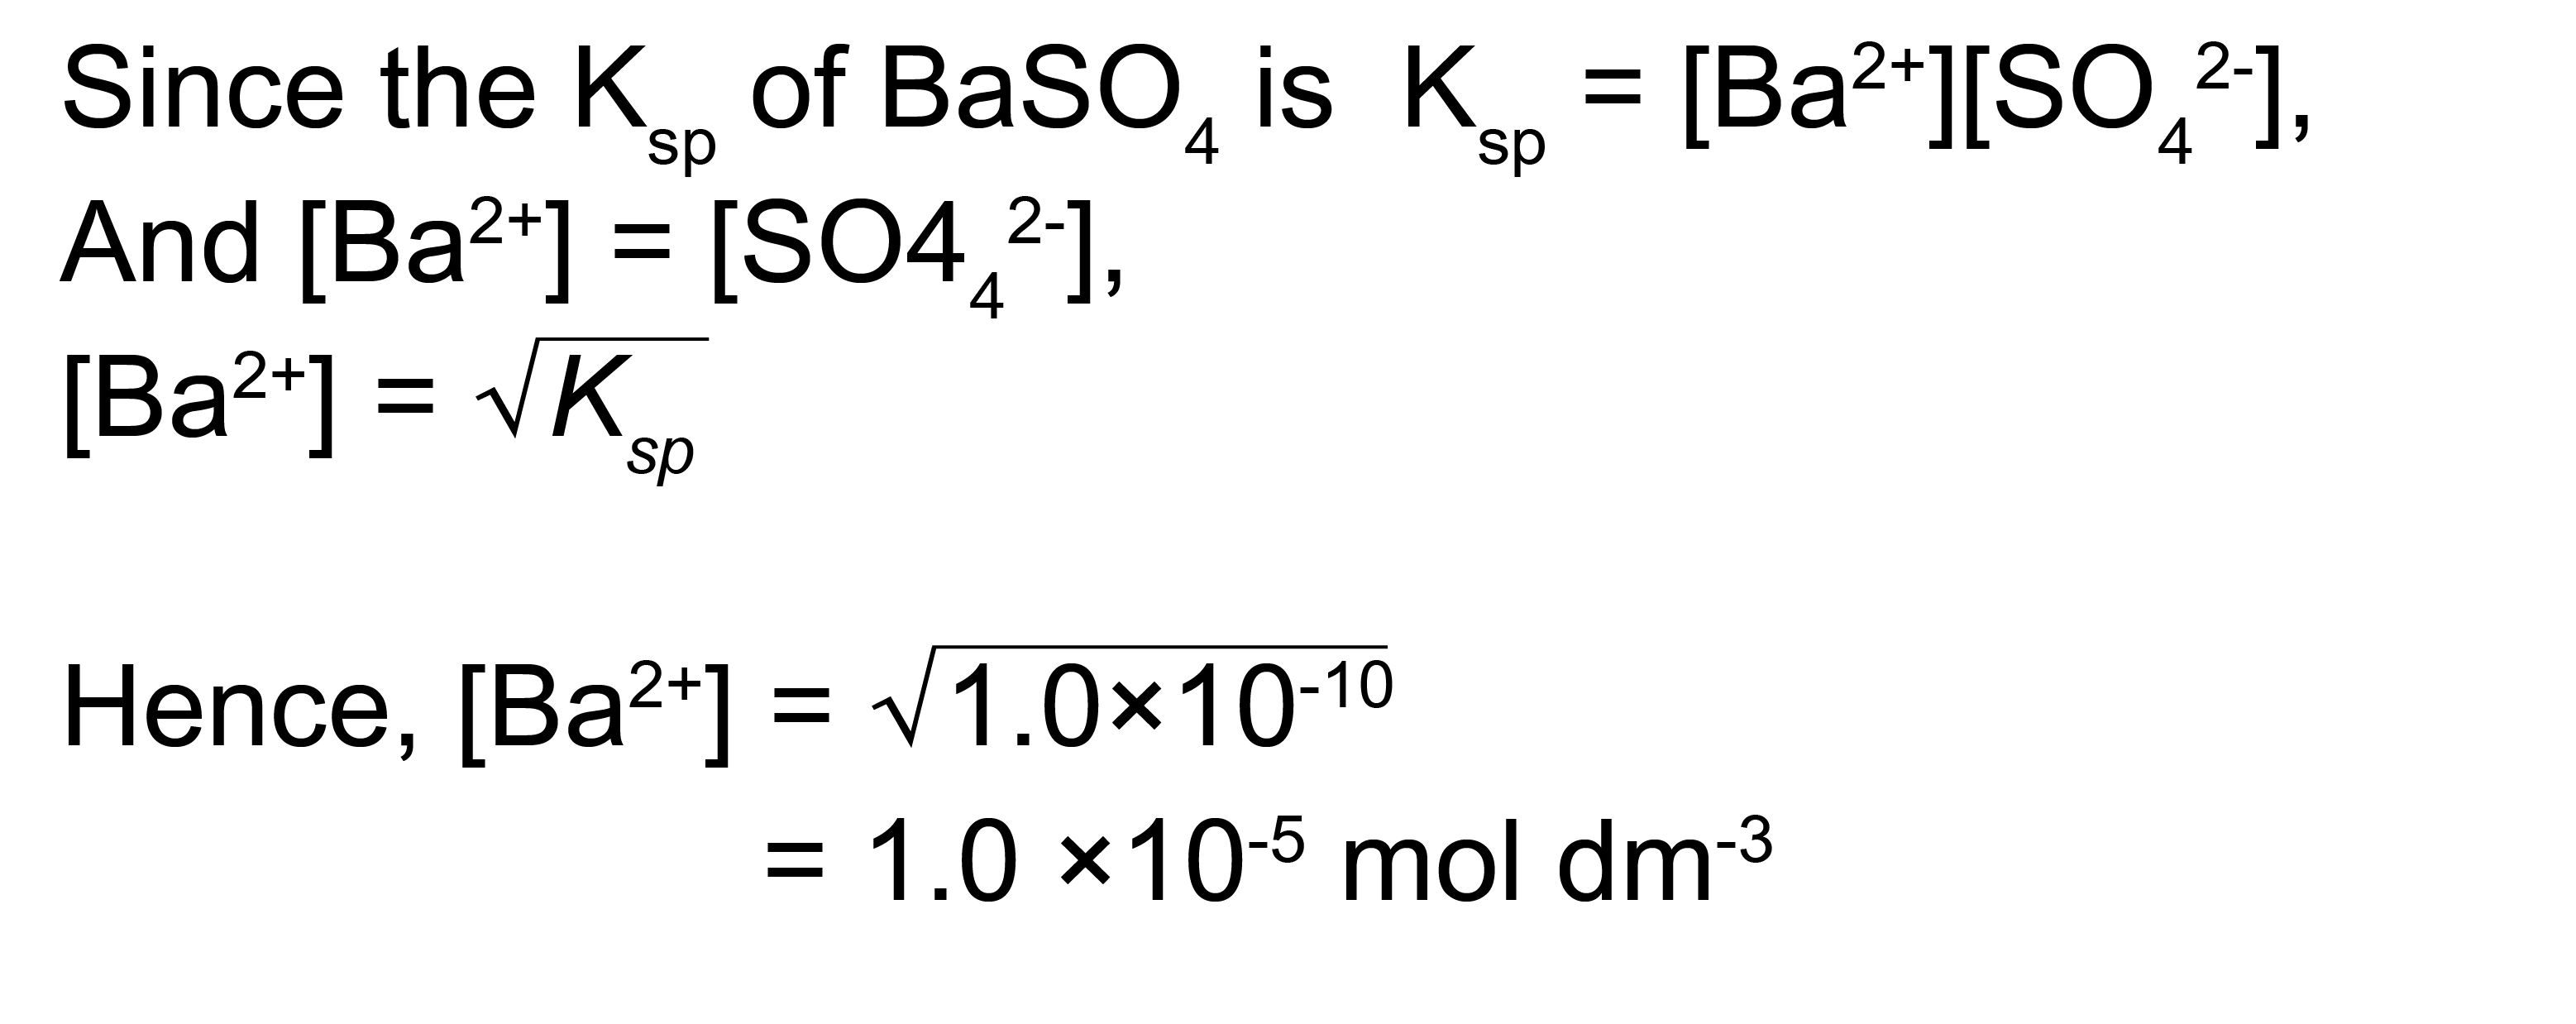 19 Solubility Product (1)